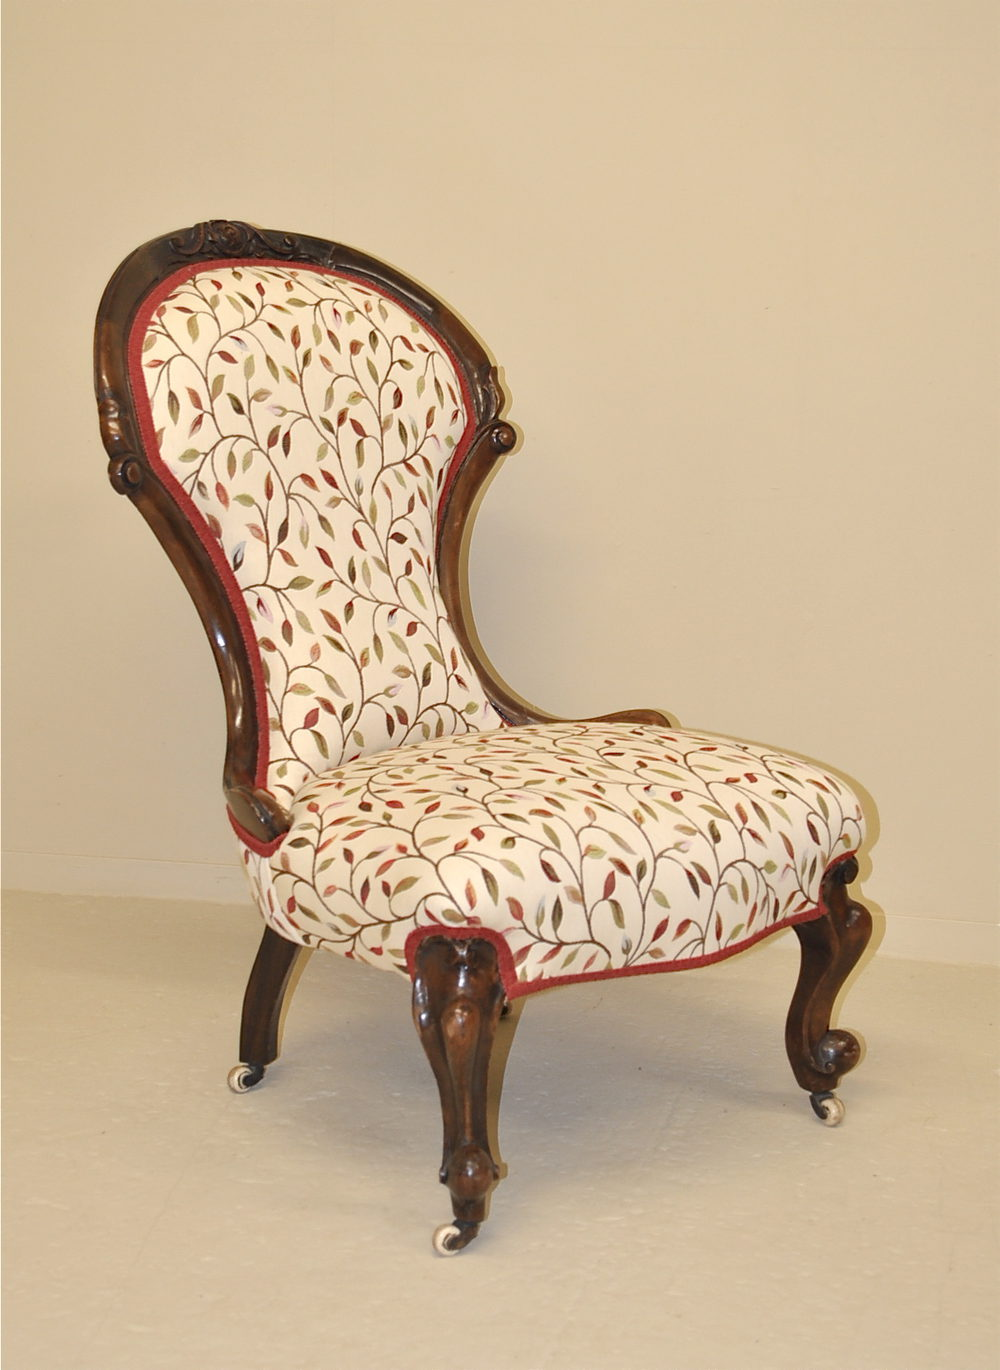 Spoonback Ladies Chair - R3541 Antique Spoon Back Chairs ... - Spoonback Ladies' Chair - R3541 - Antiques Atlas